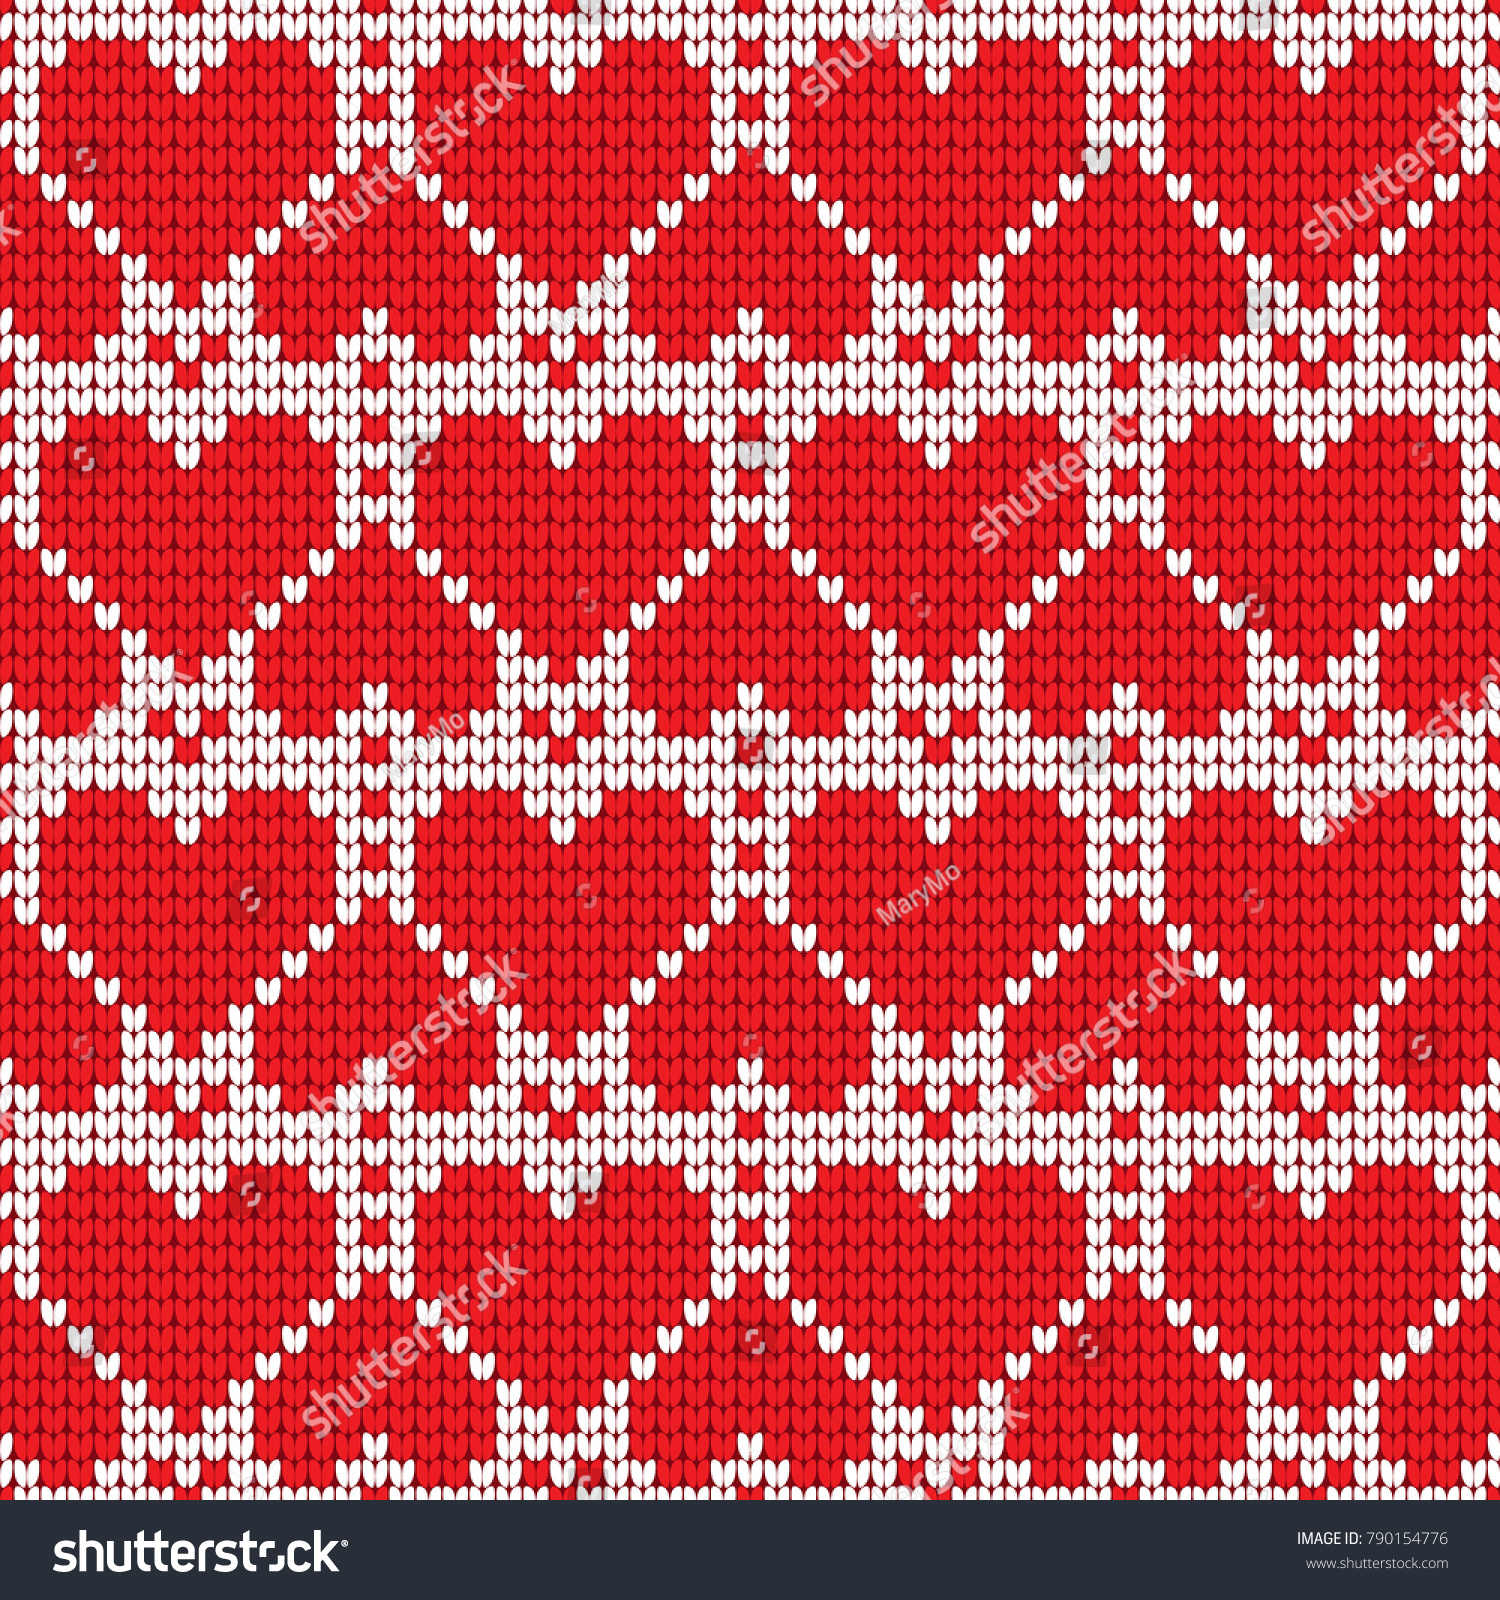 Valentines Day Love Heart Knitted Seamless Stock Vector (Royalty ...